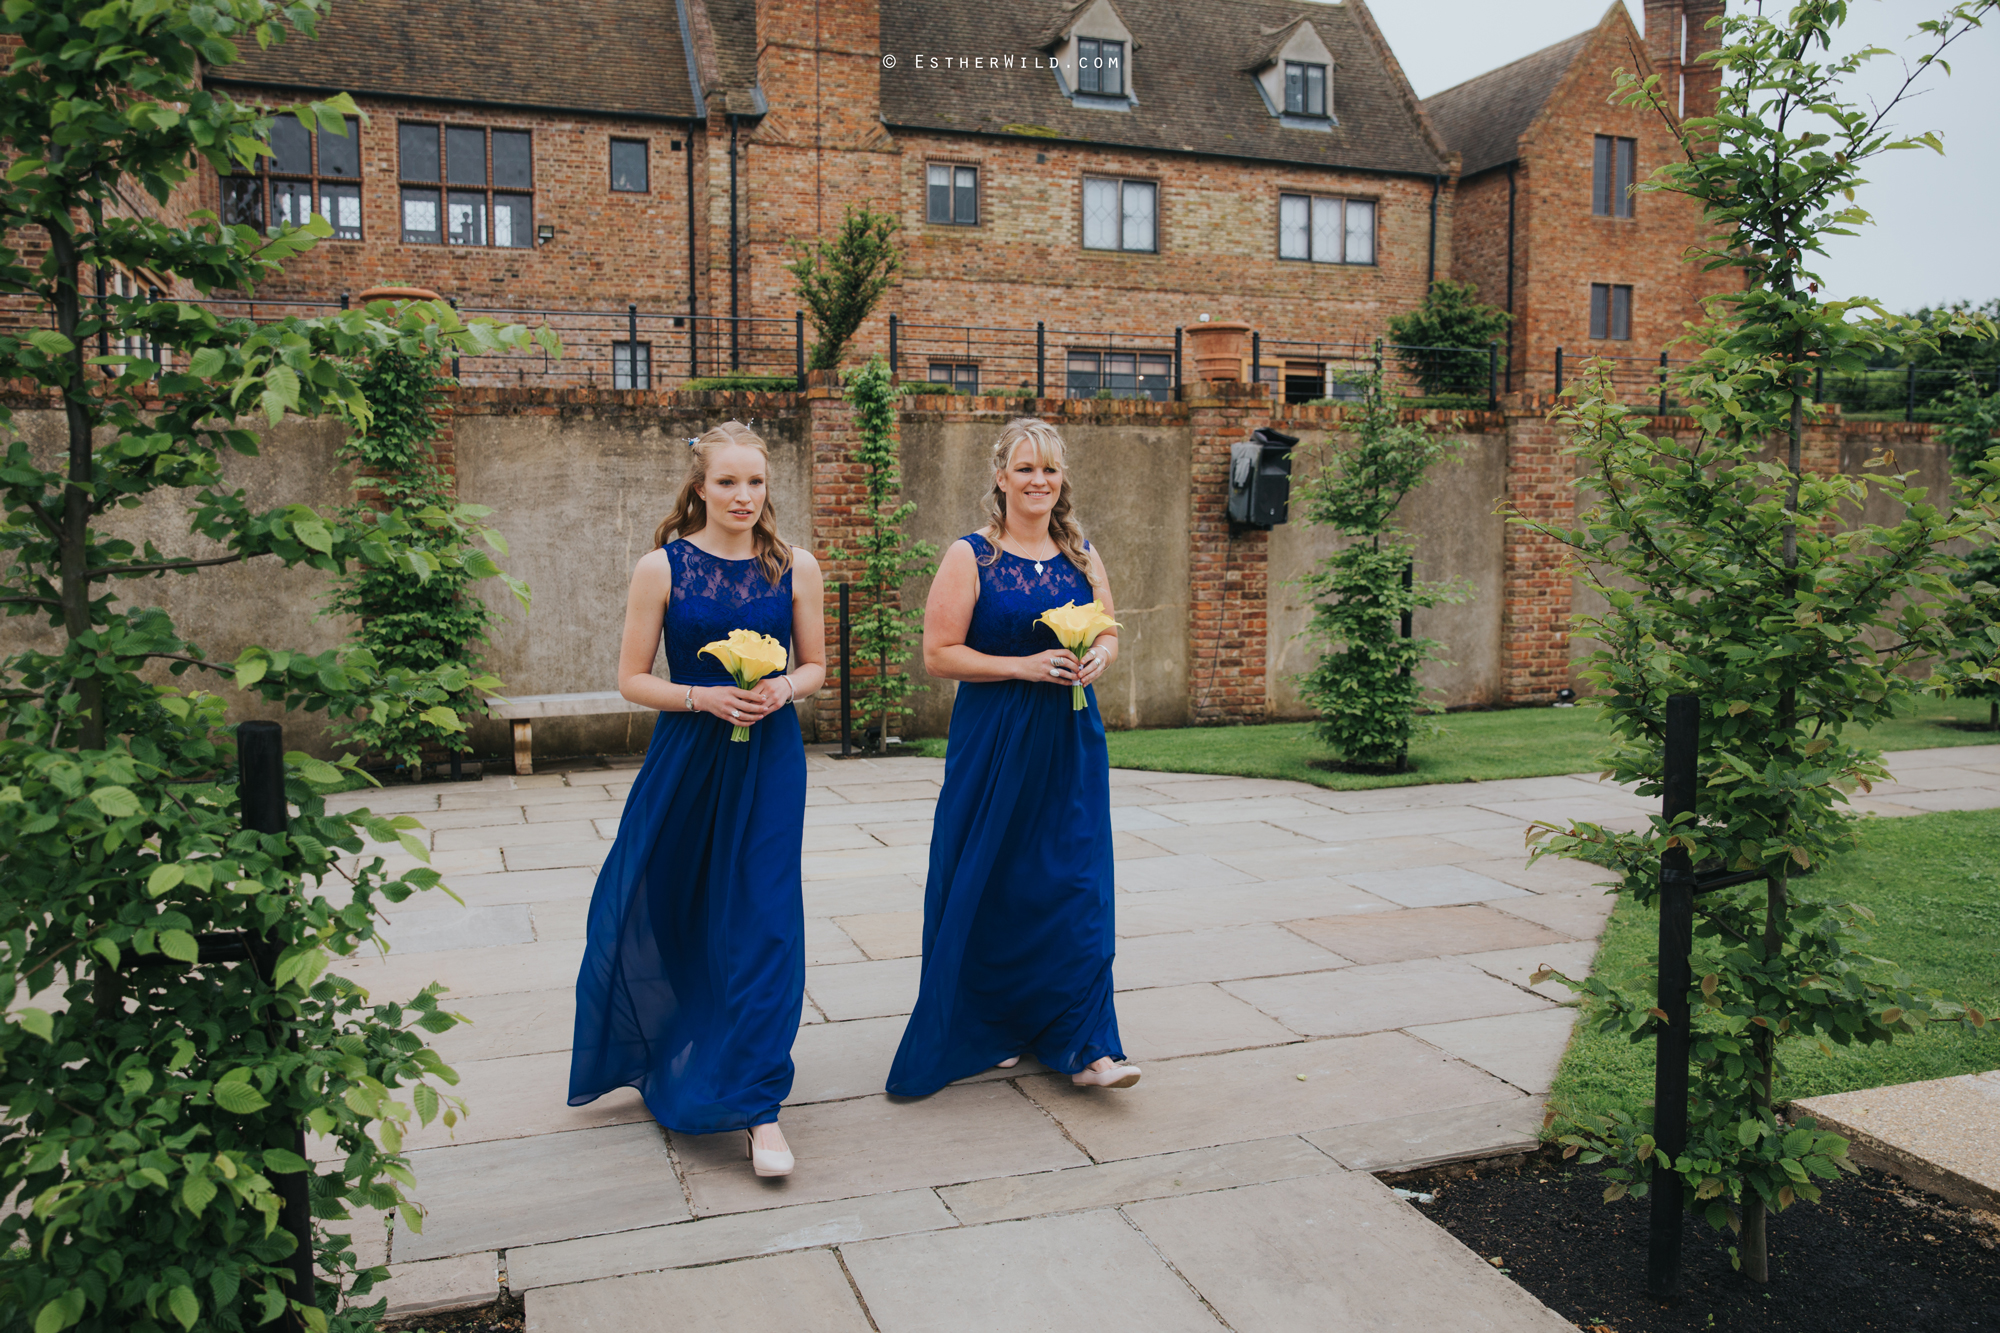 Old_Hall_Ely_Wedding_Esther_Wild_Photographer_IMG_0811.jpg